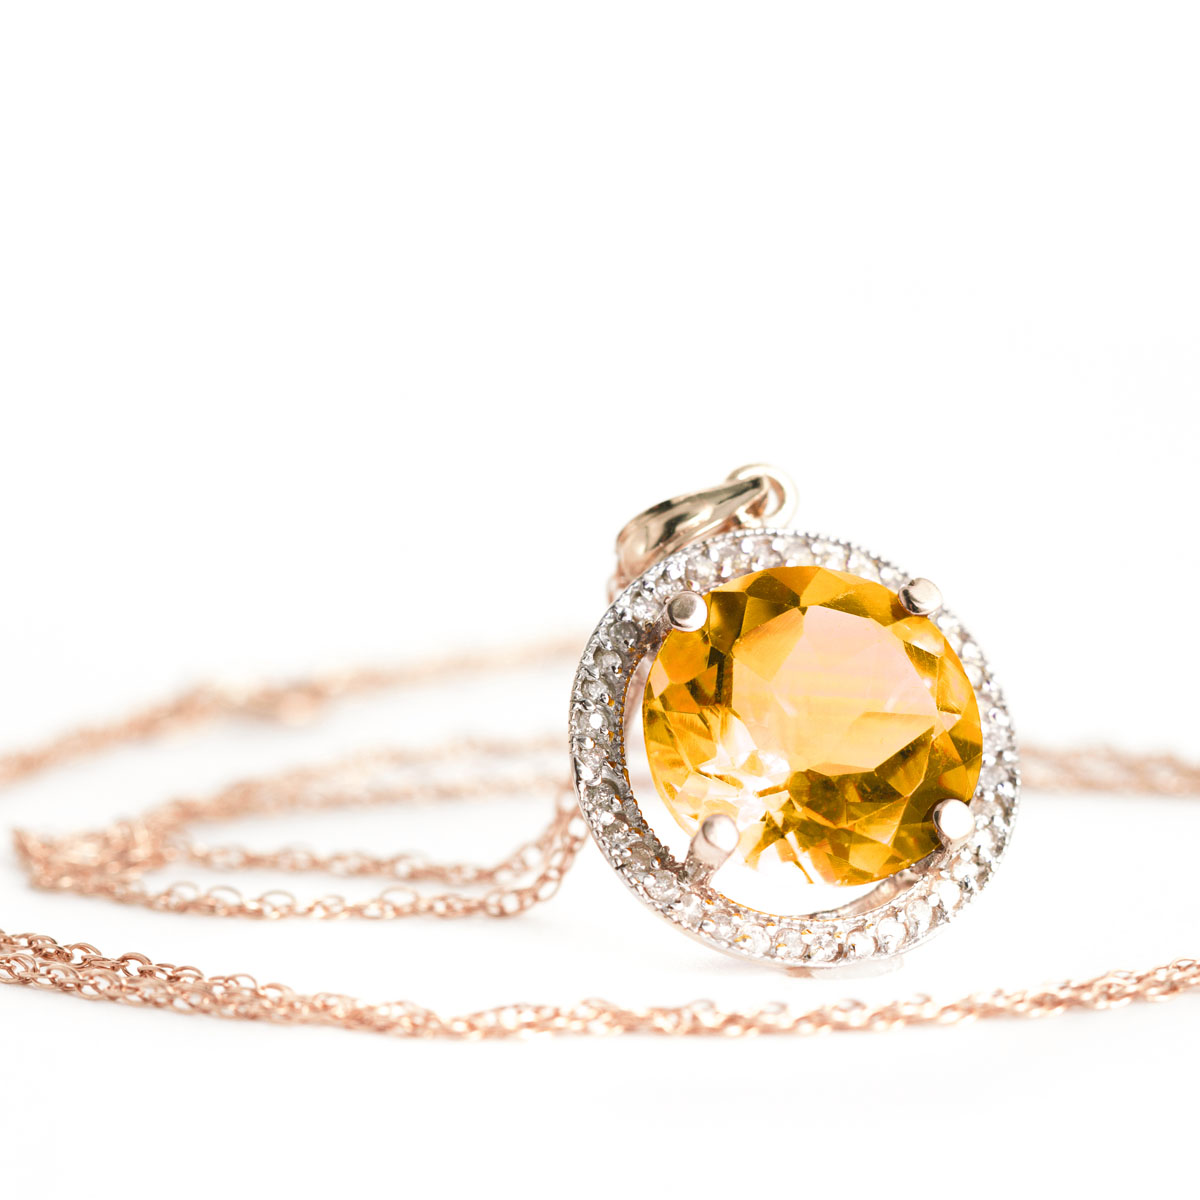 Citrine Halo Pendant Necklace 6.2 ctw in 9ct Rose Gold